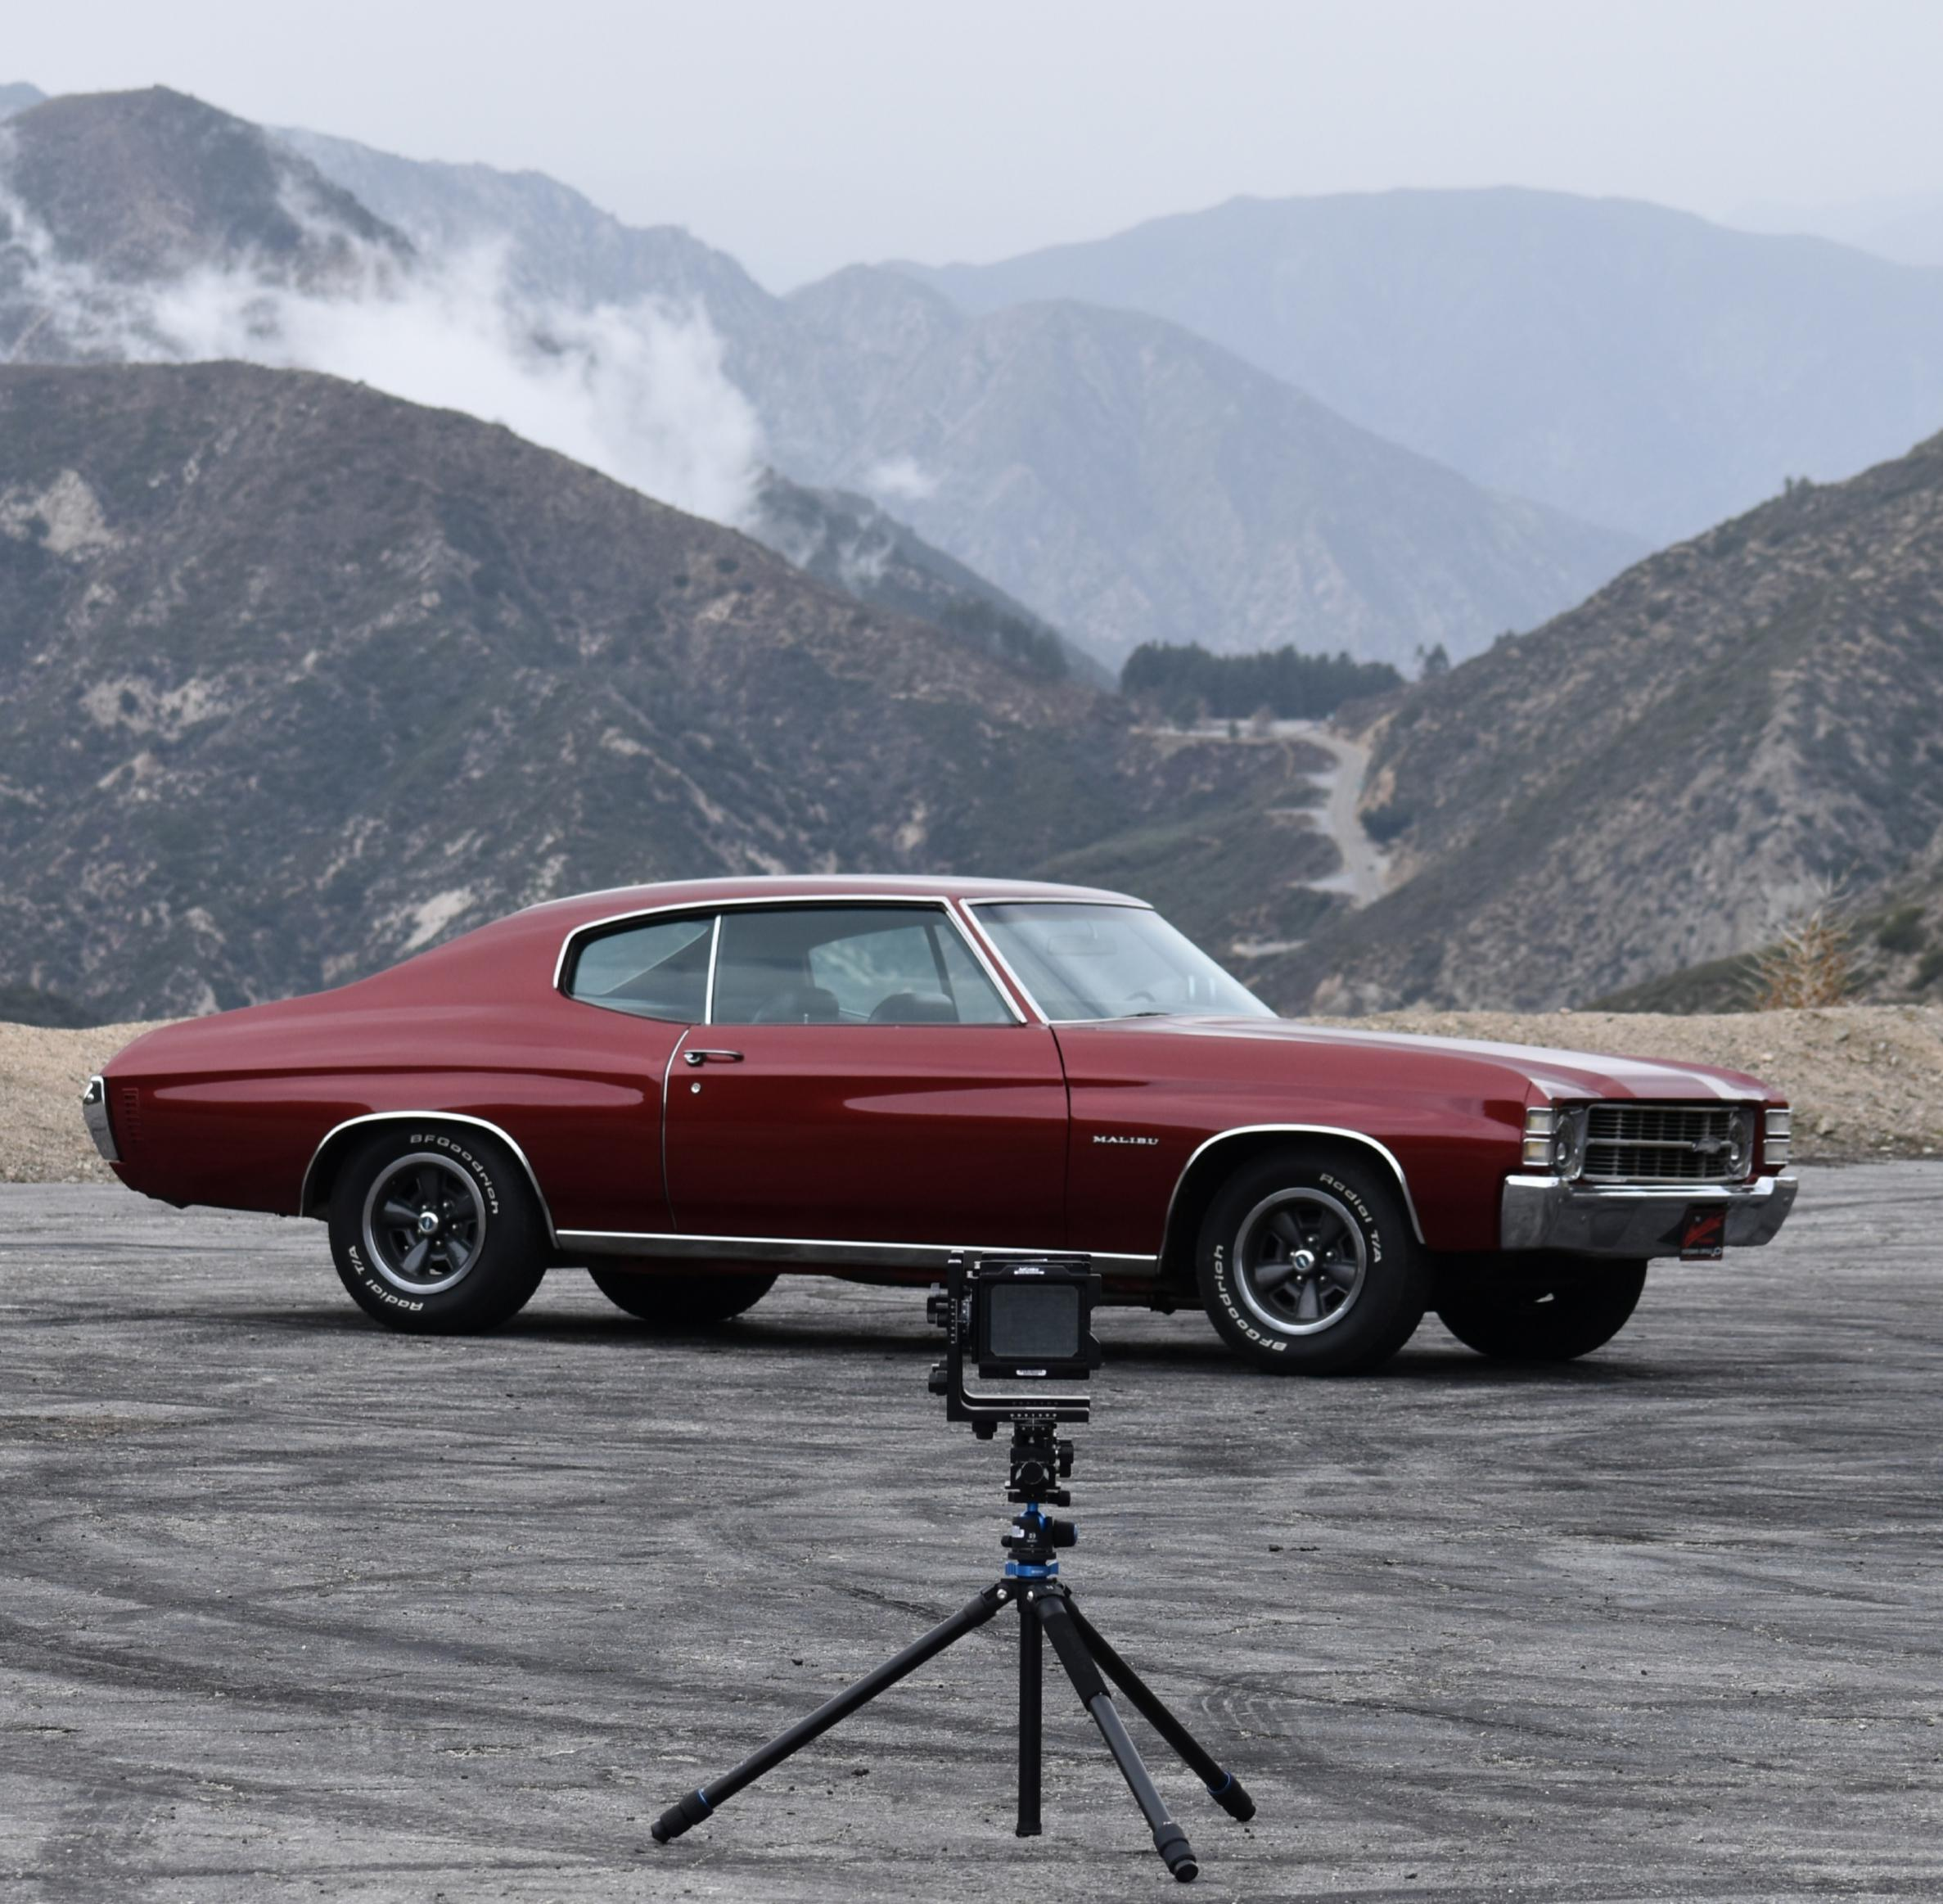 @Chevellecruiser is pretty popular with the old school methods out on the Angeles Crest Highway! Good old 71′ Chevelle